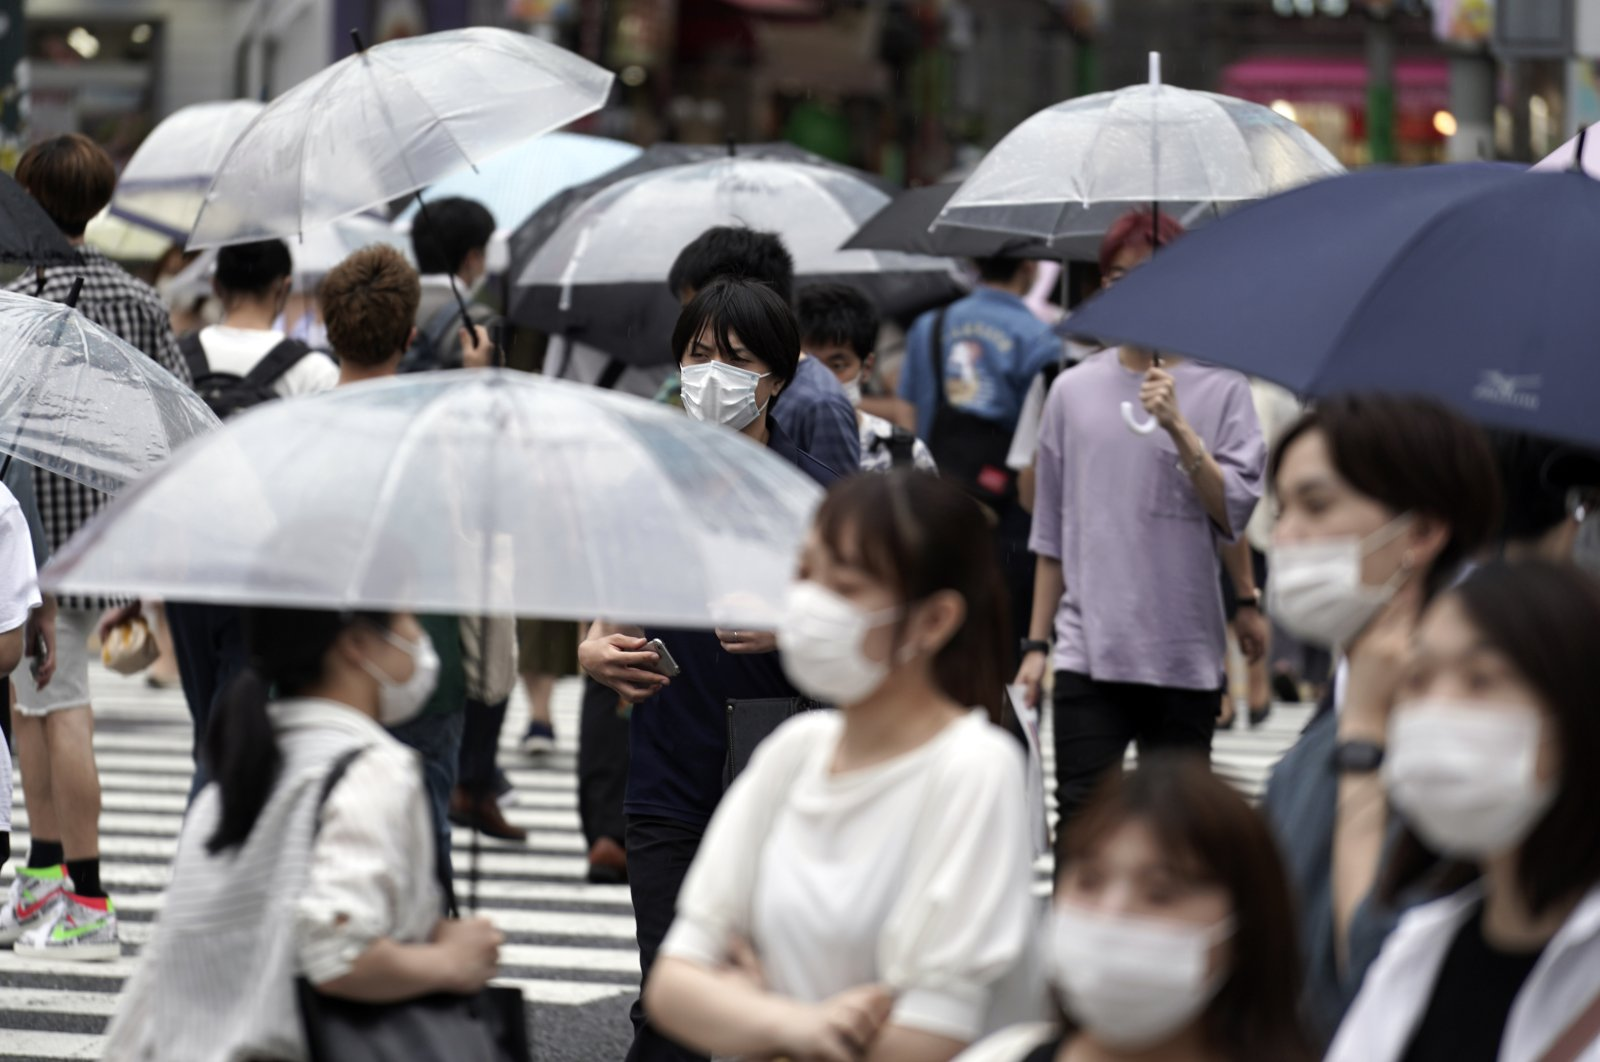 People wearing protective face masks to help curb the spread of the coronavirus walk at a Shibuya pedestrian crossing, Tokyo, Japan, July 9, 2020. (AP Photo)